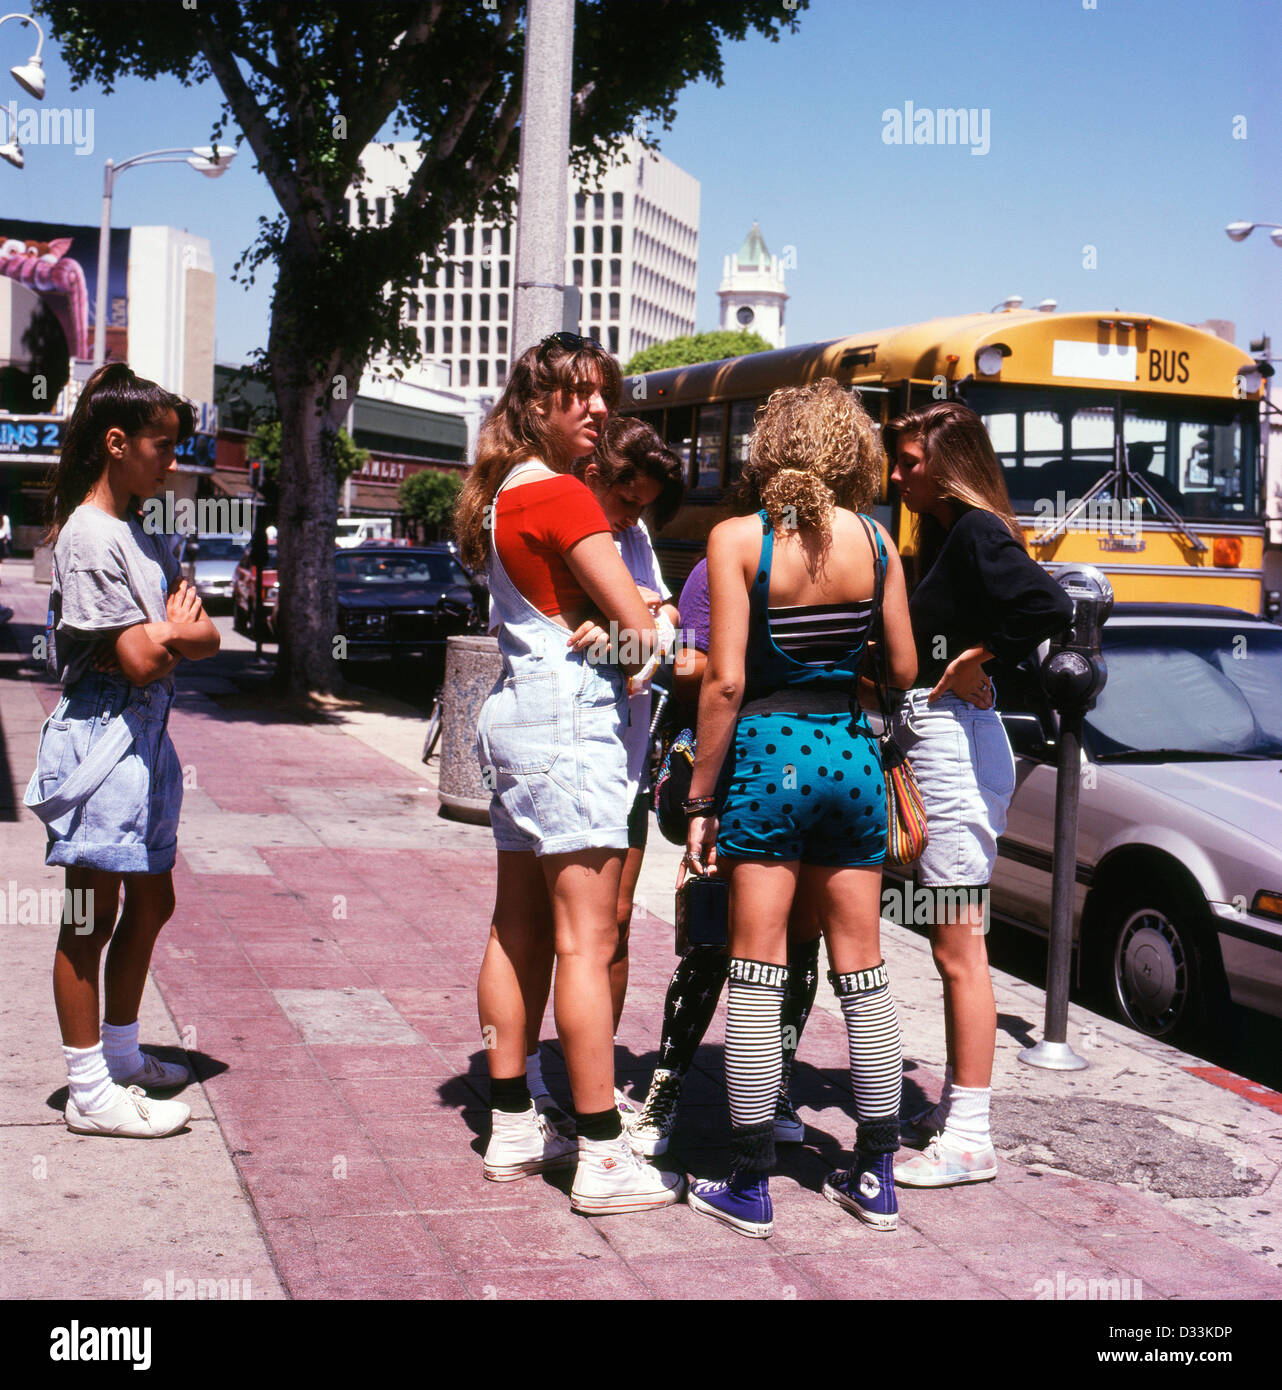 Archival Photo Of Group Teenage High School Girls 1980s Or 1990s Standing In The Street With A Yellow American Bus Westwood Village Los Angeles